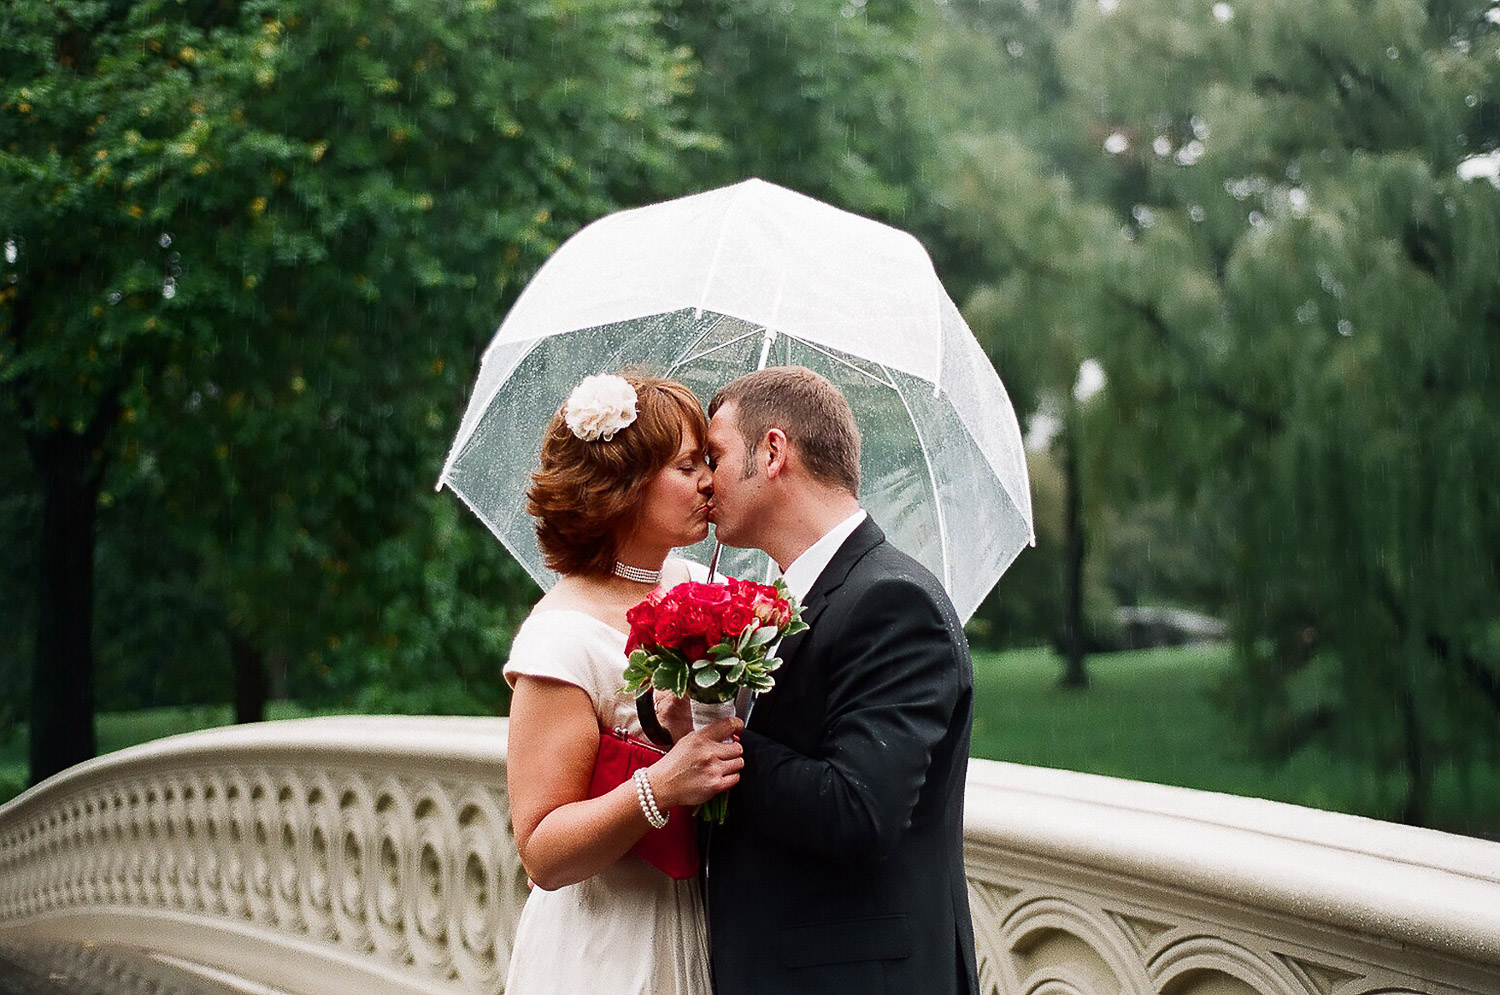 rainy day elopement wedding day photo by wendy g photography